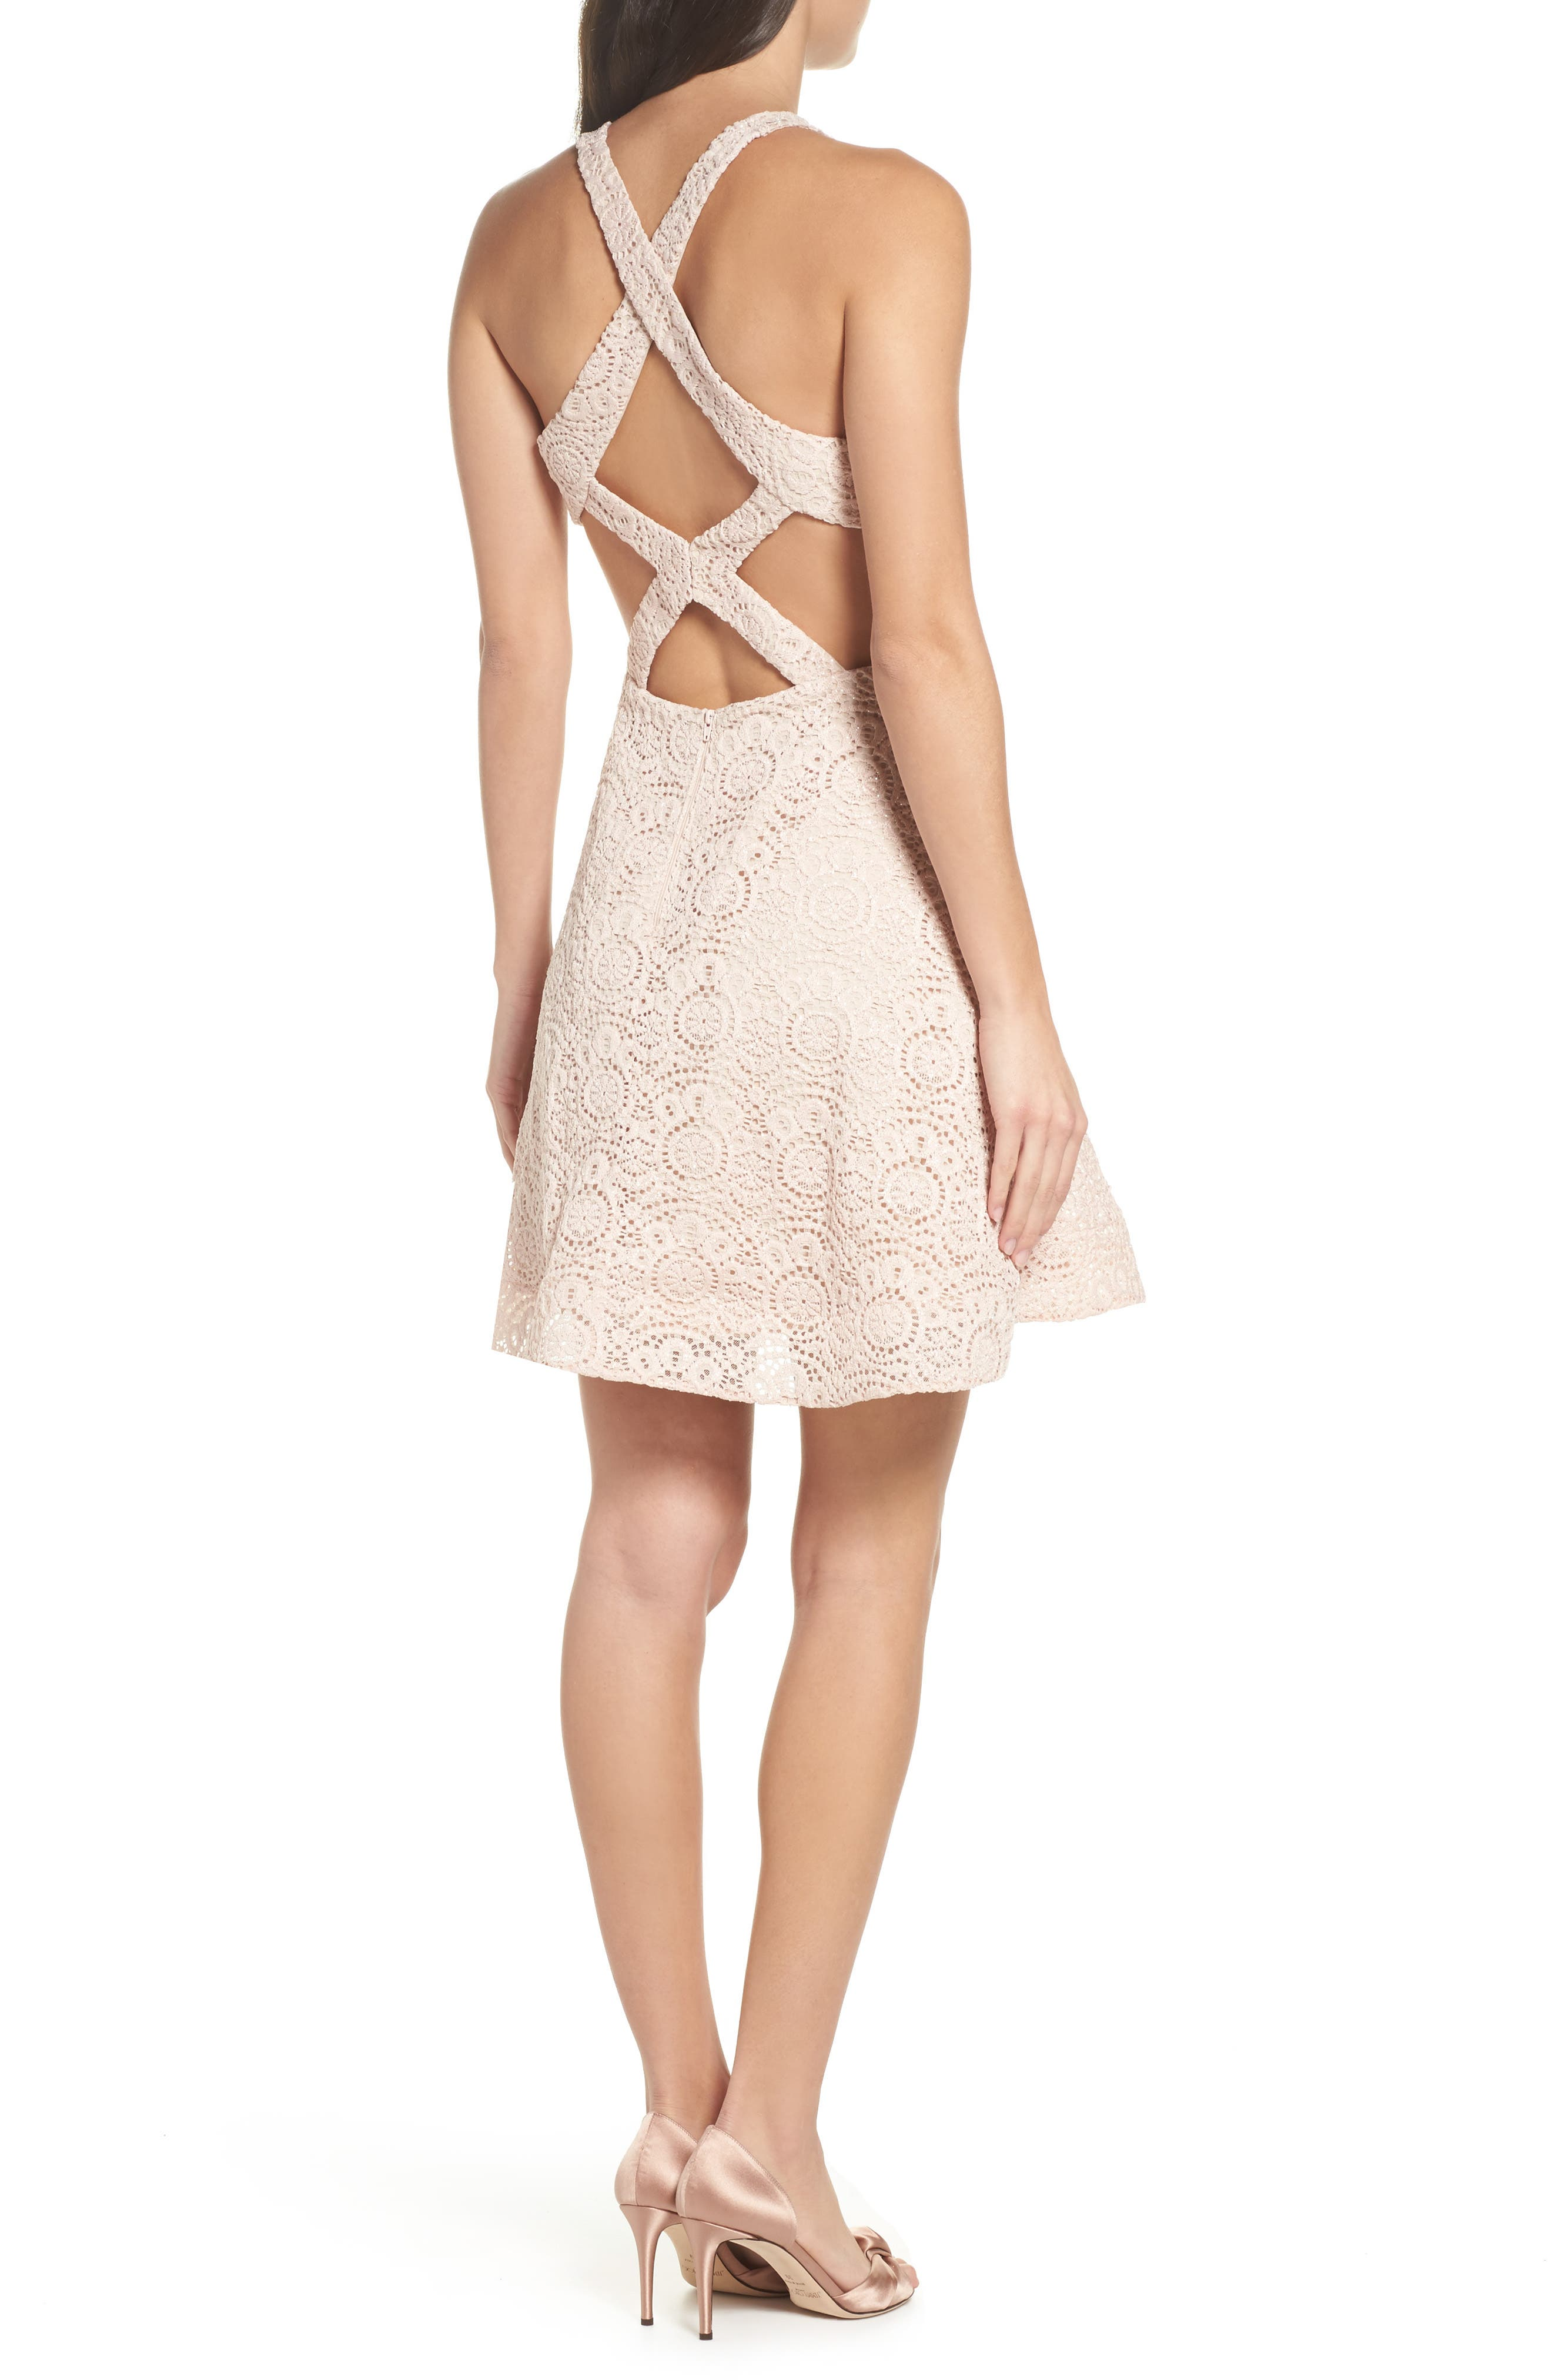 Glitter Lace Strappy Back Party Dress,                             Alternate thumbnail 2, color,                             Blush/ Nude